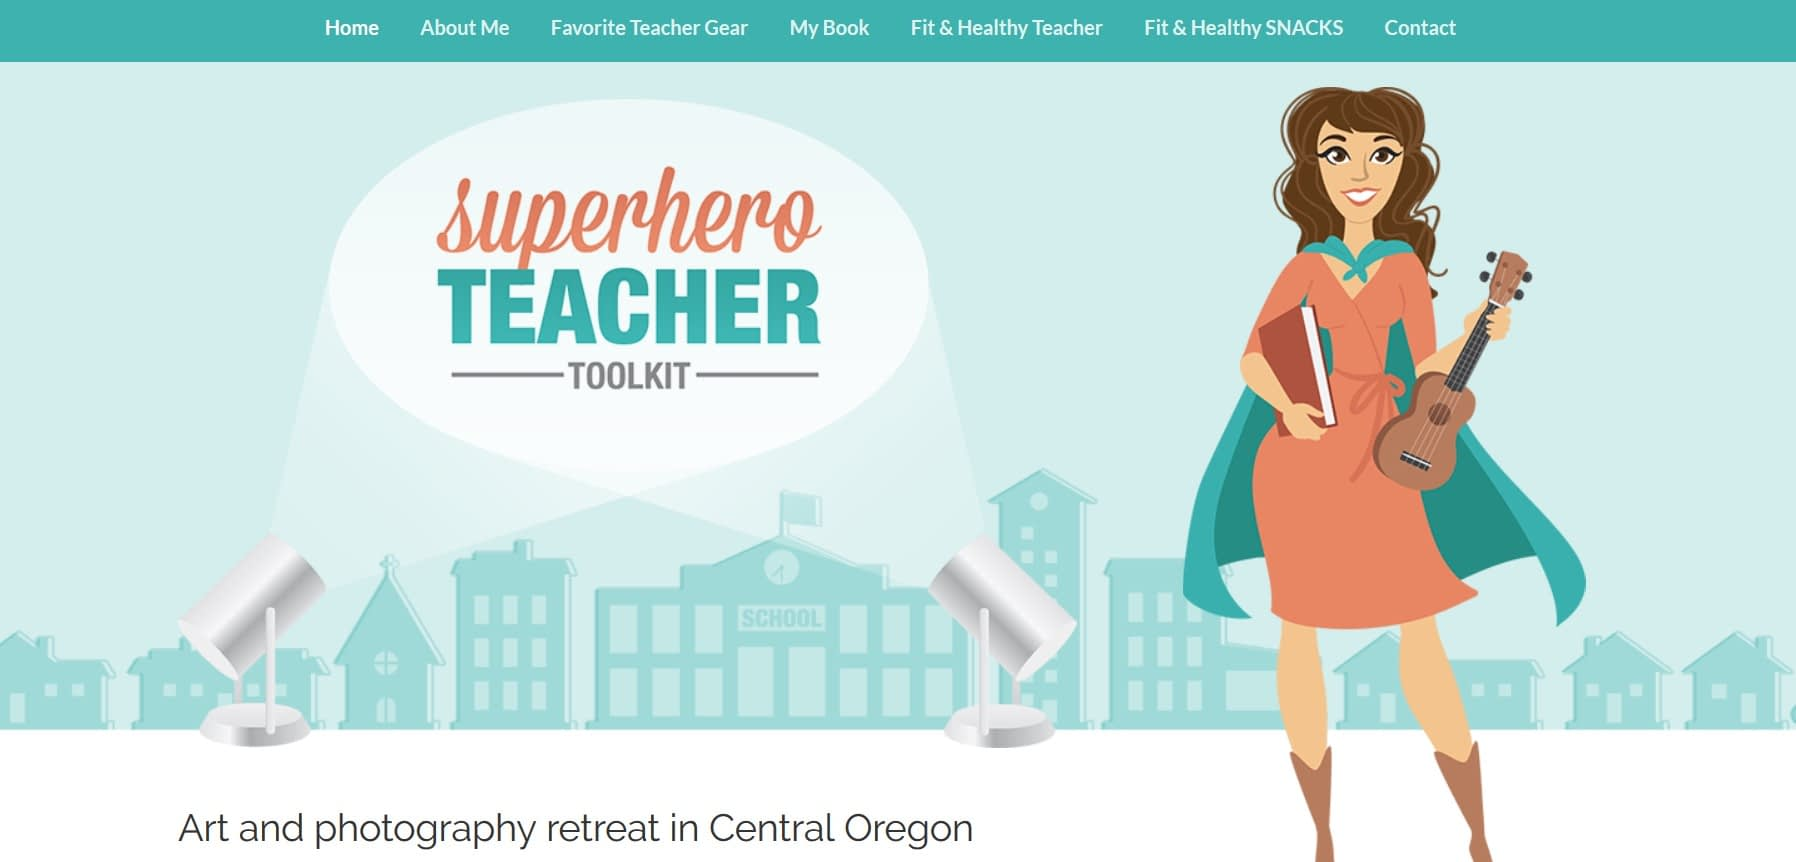 custom branded website: Superhero Teacher